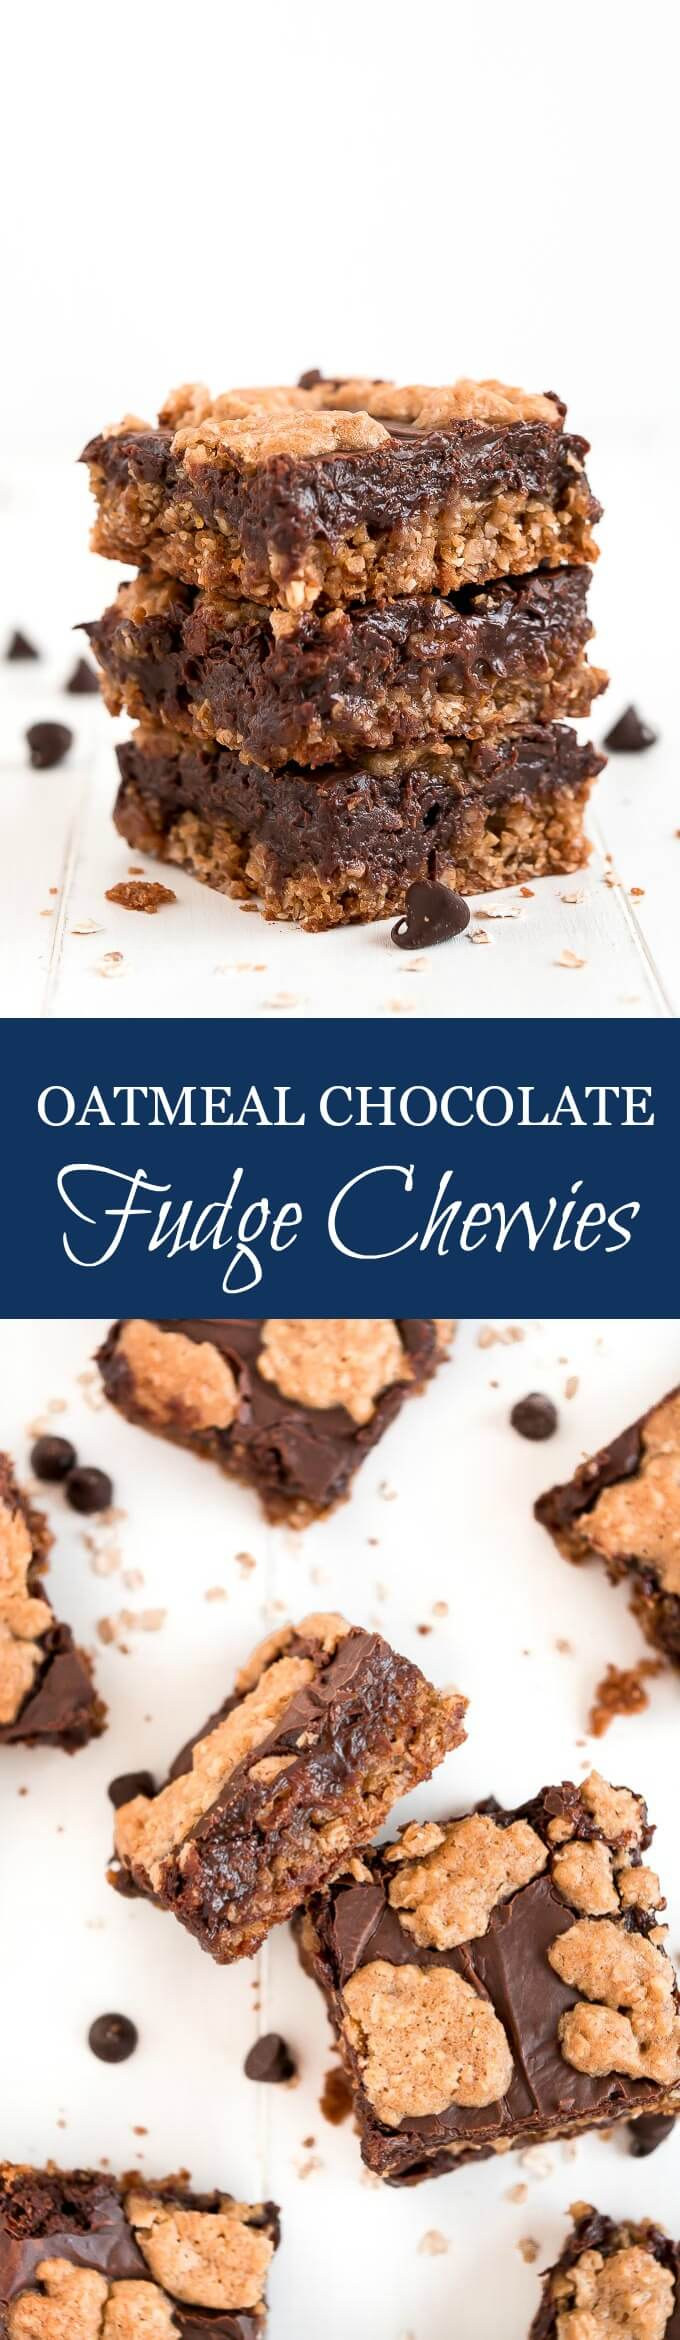 Oatmeal Chocolate Fudge Chewies are amazingly delicious chocolate cookie bars that are easy to make and perfect for feeding a crowd.